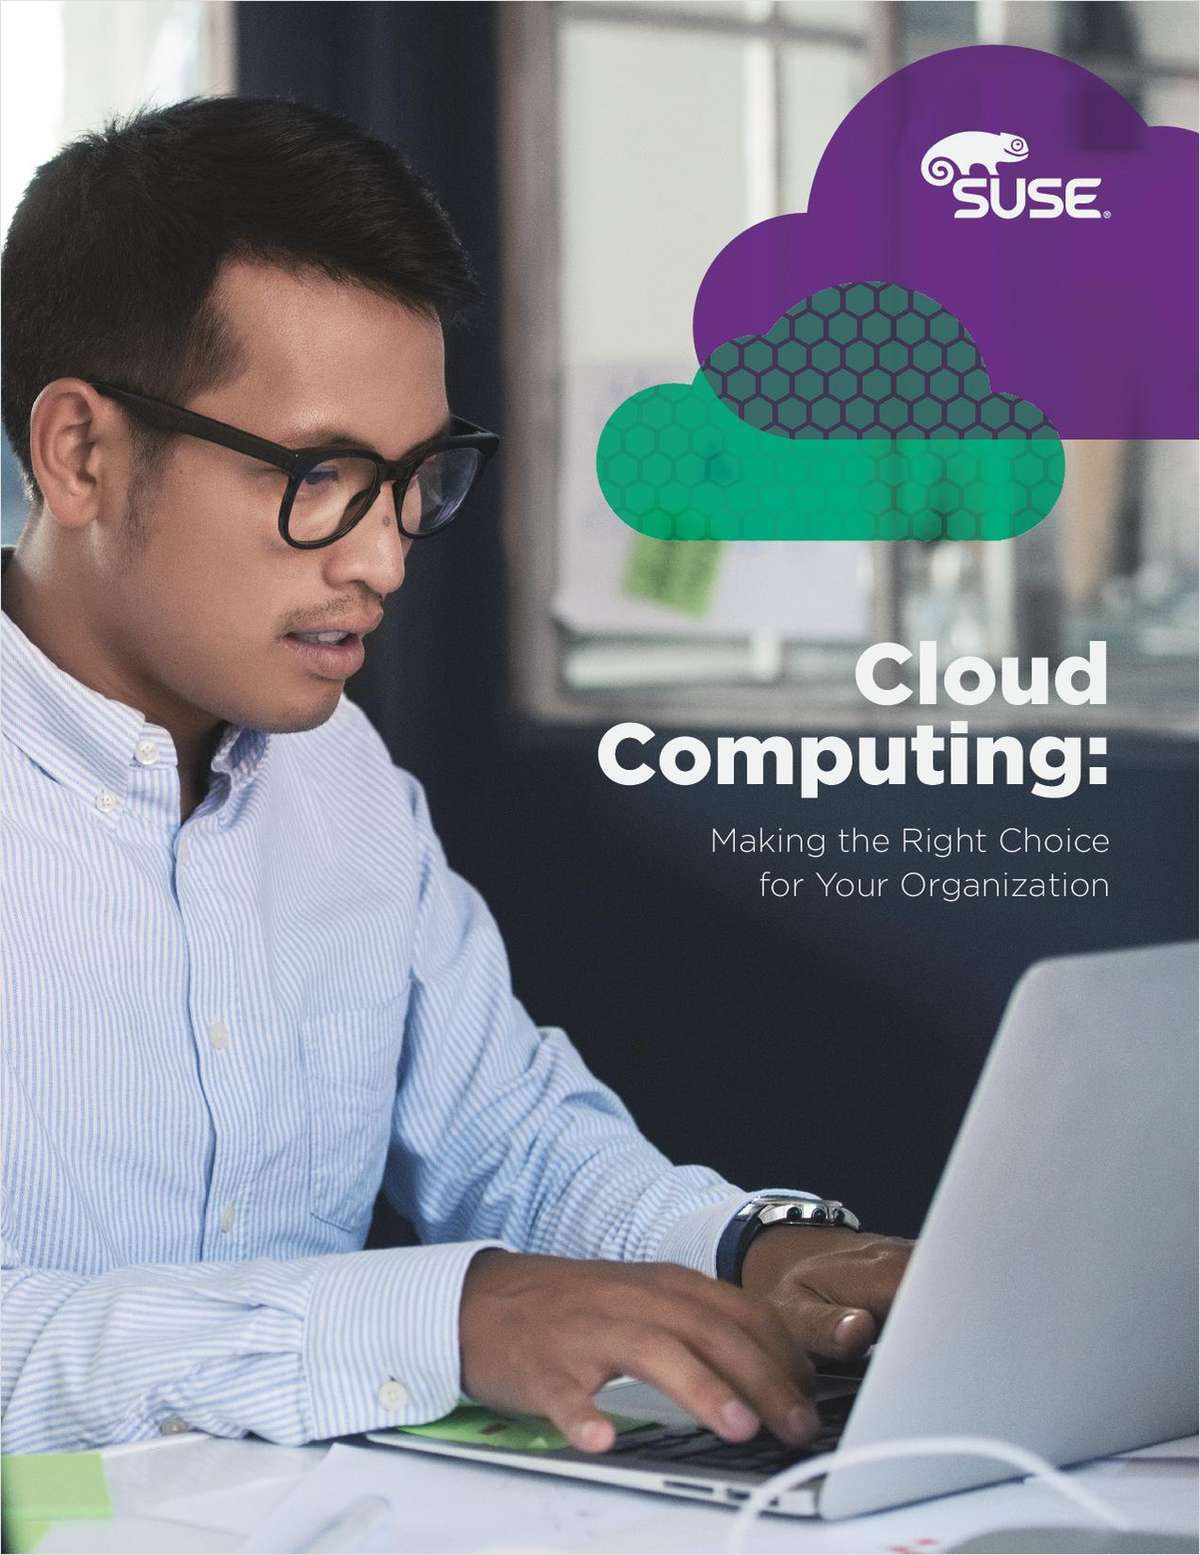 Cloud Computing: Making the Right Choice for Your Organization